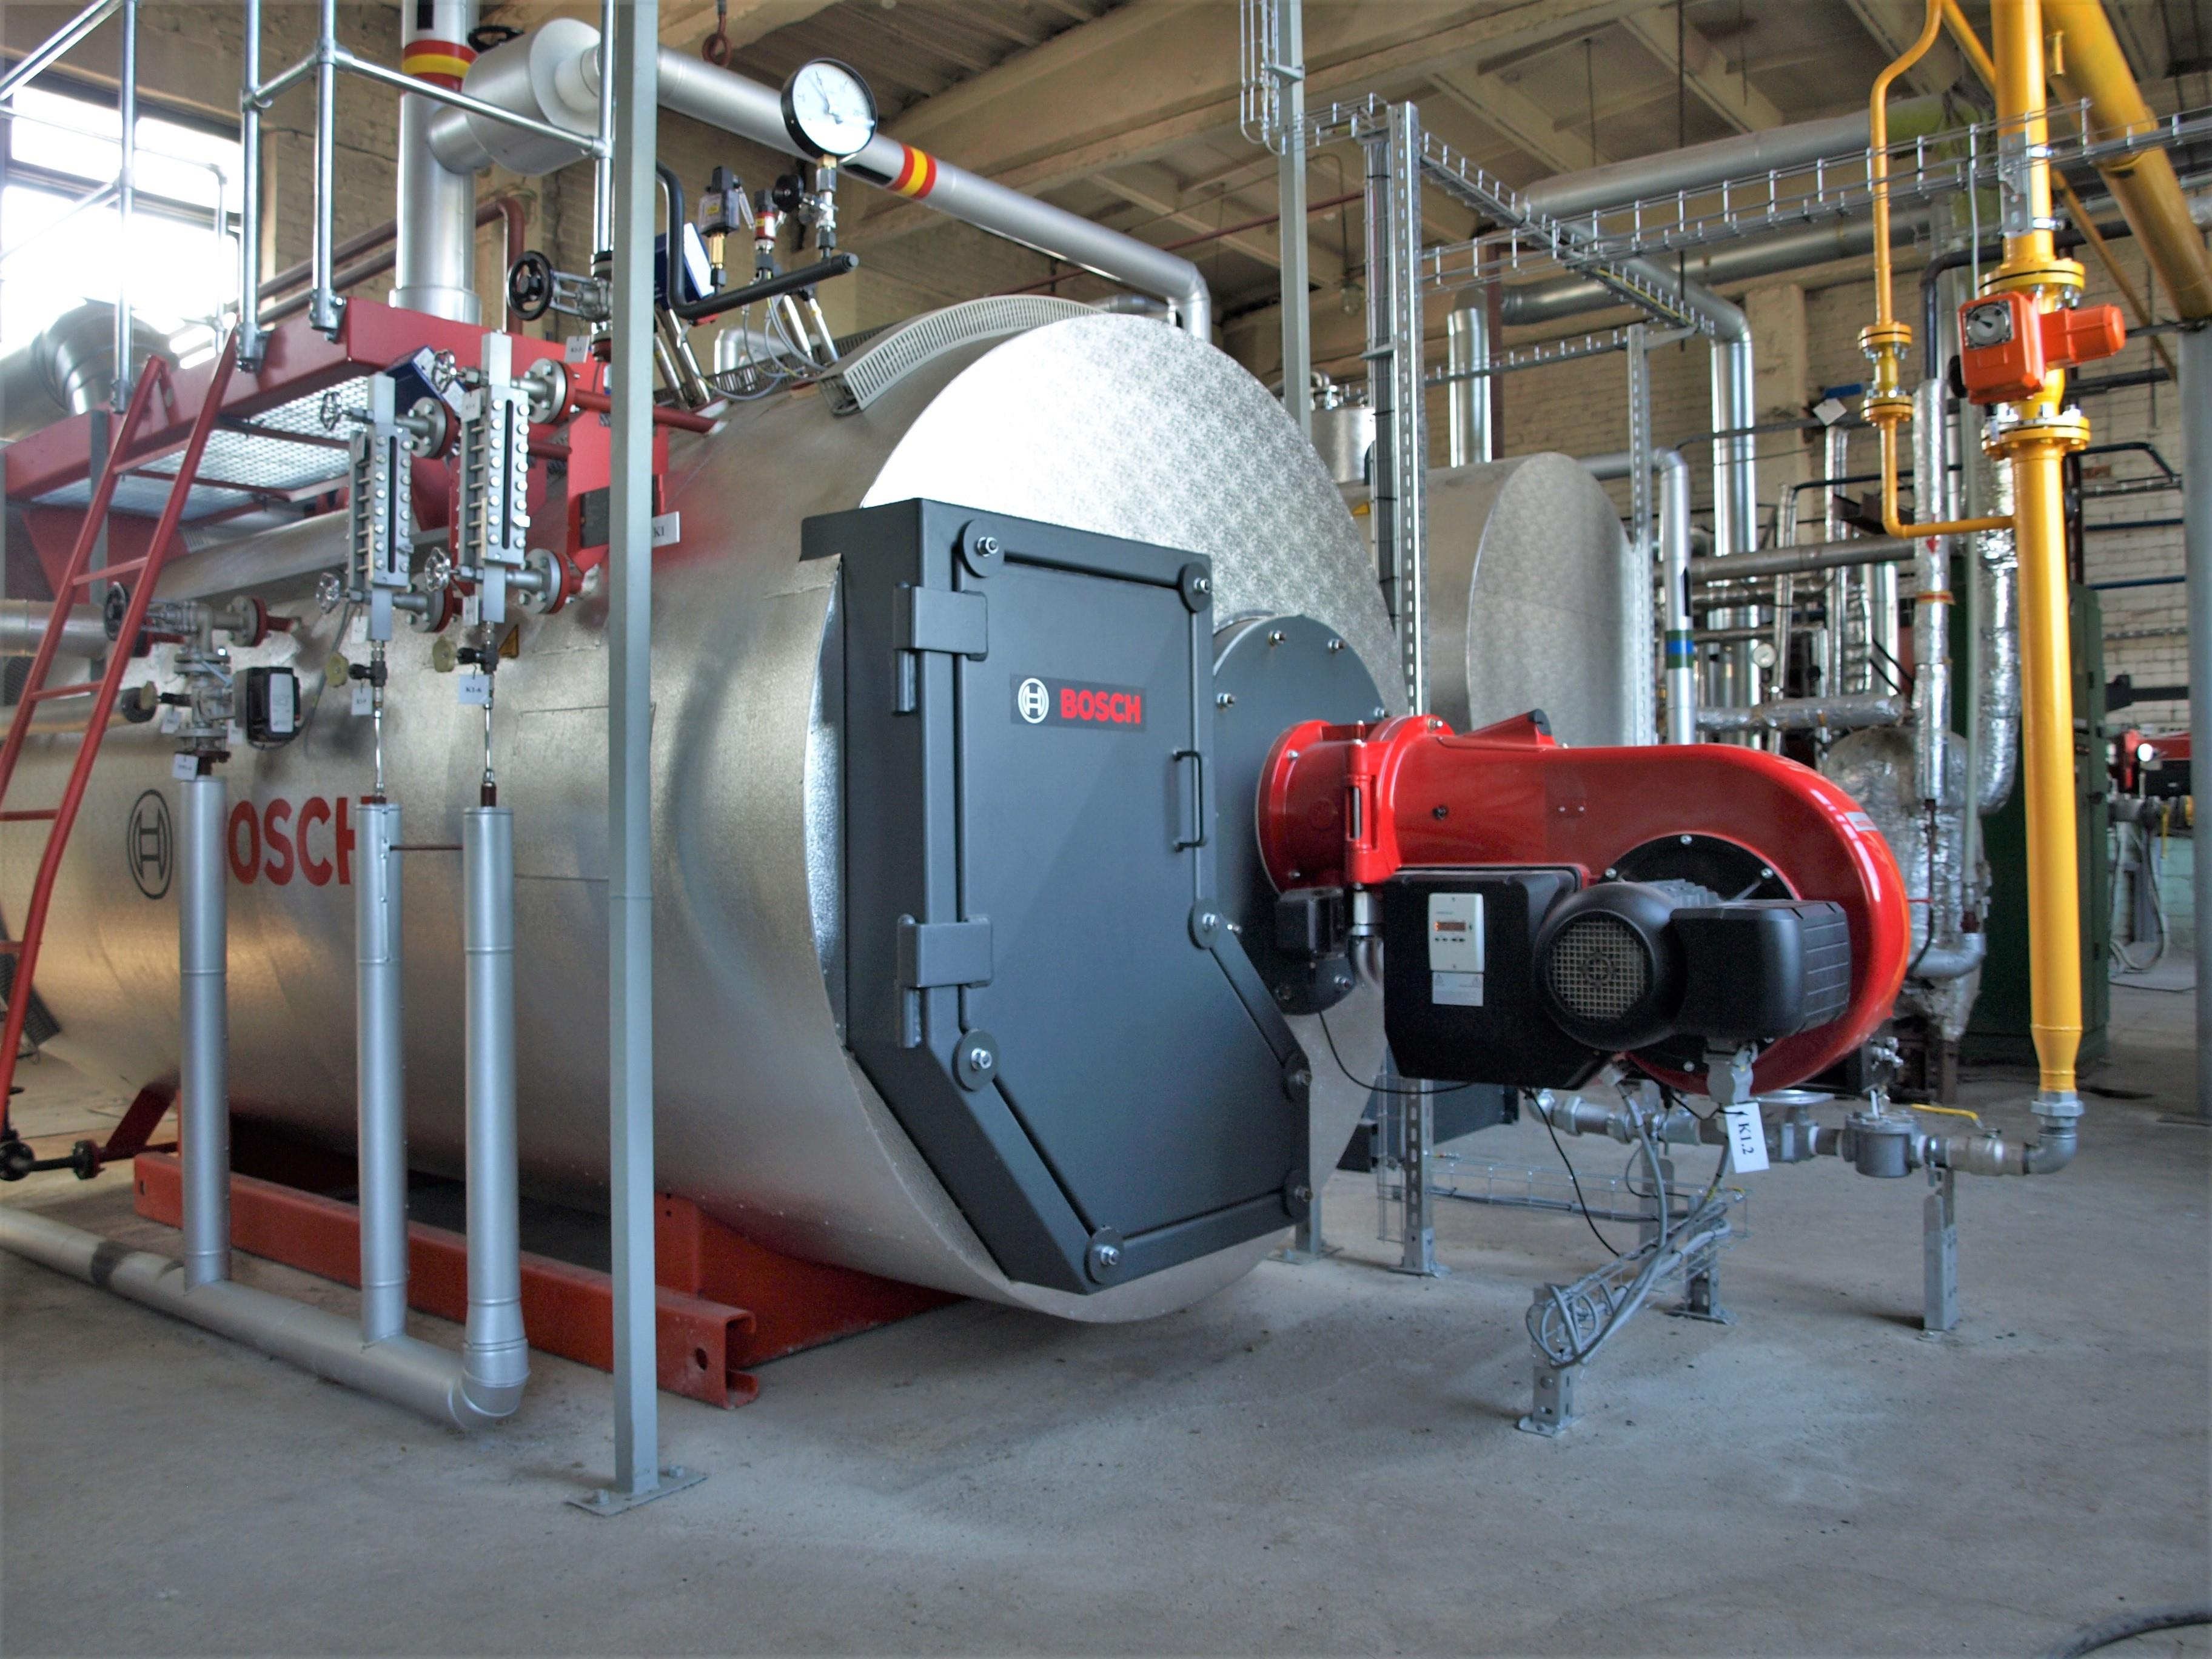 Steam Boiler House in Lithuania